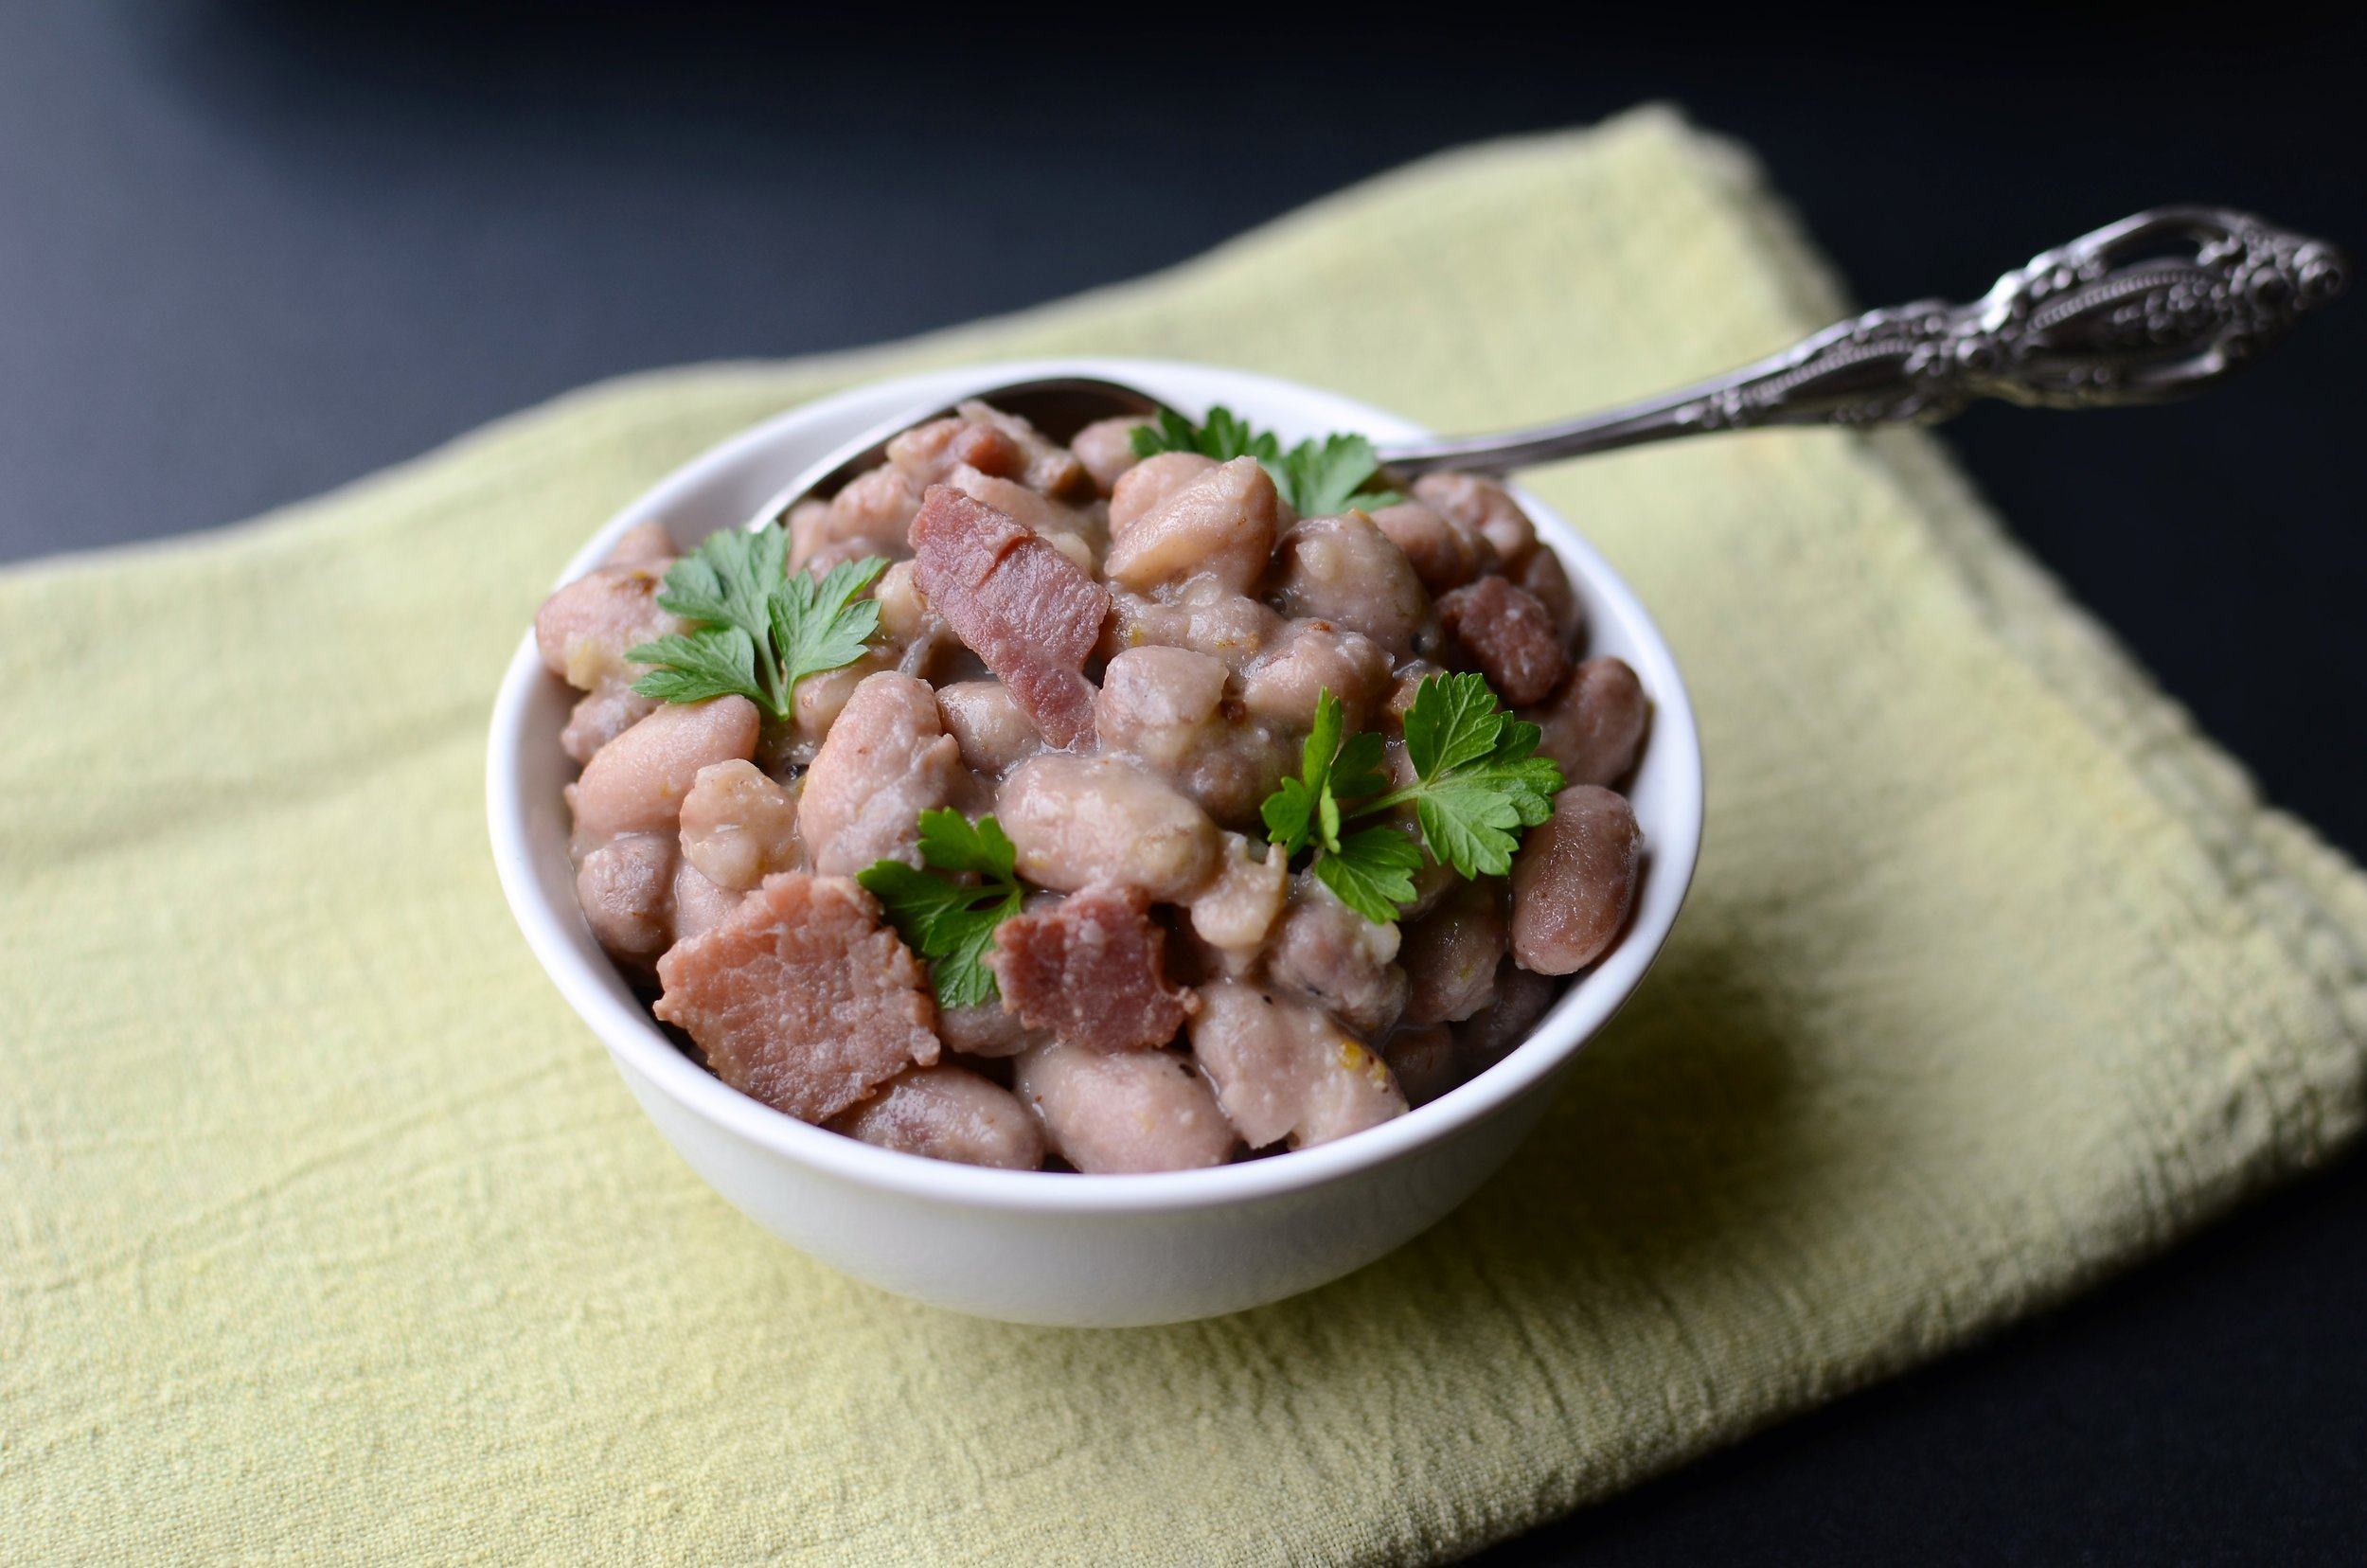 Bird Egg Shell Beans, recipe and how-to photos. How to cook bird egg beans.